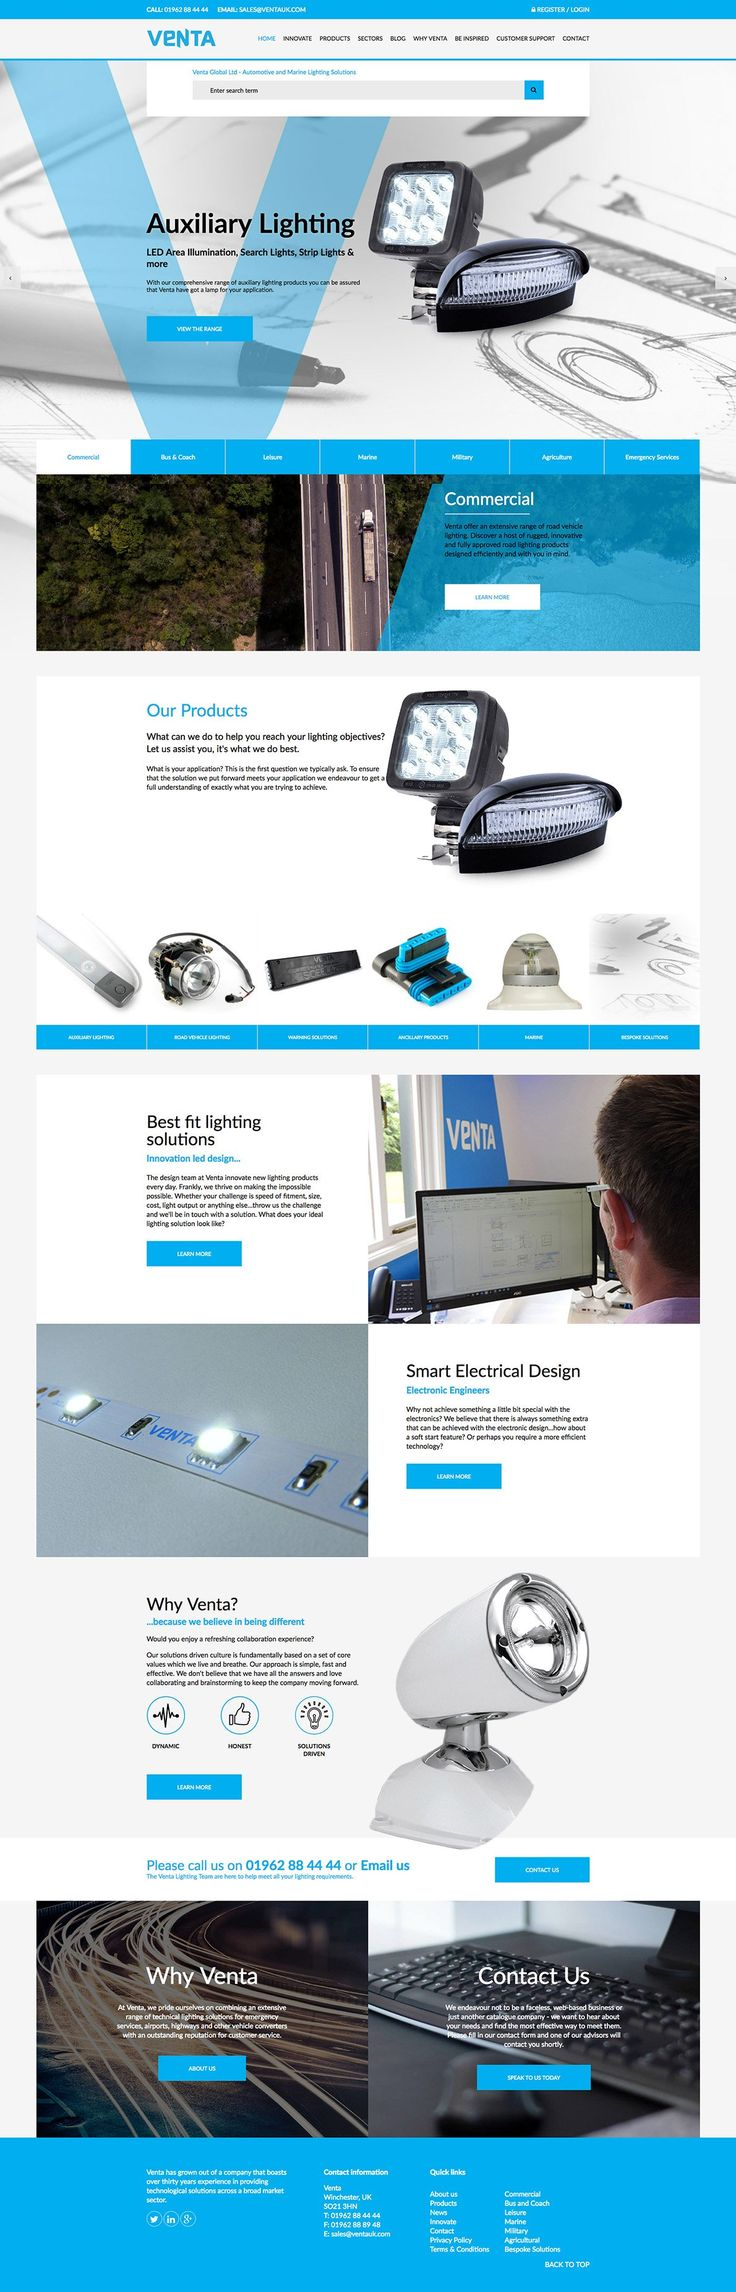 16 best Poster images on Pinterest | Graph design, Page layout and ...